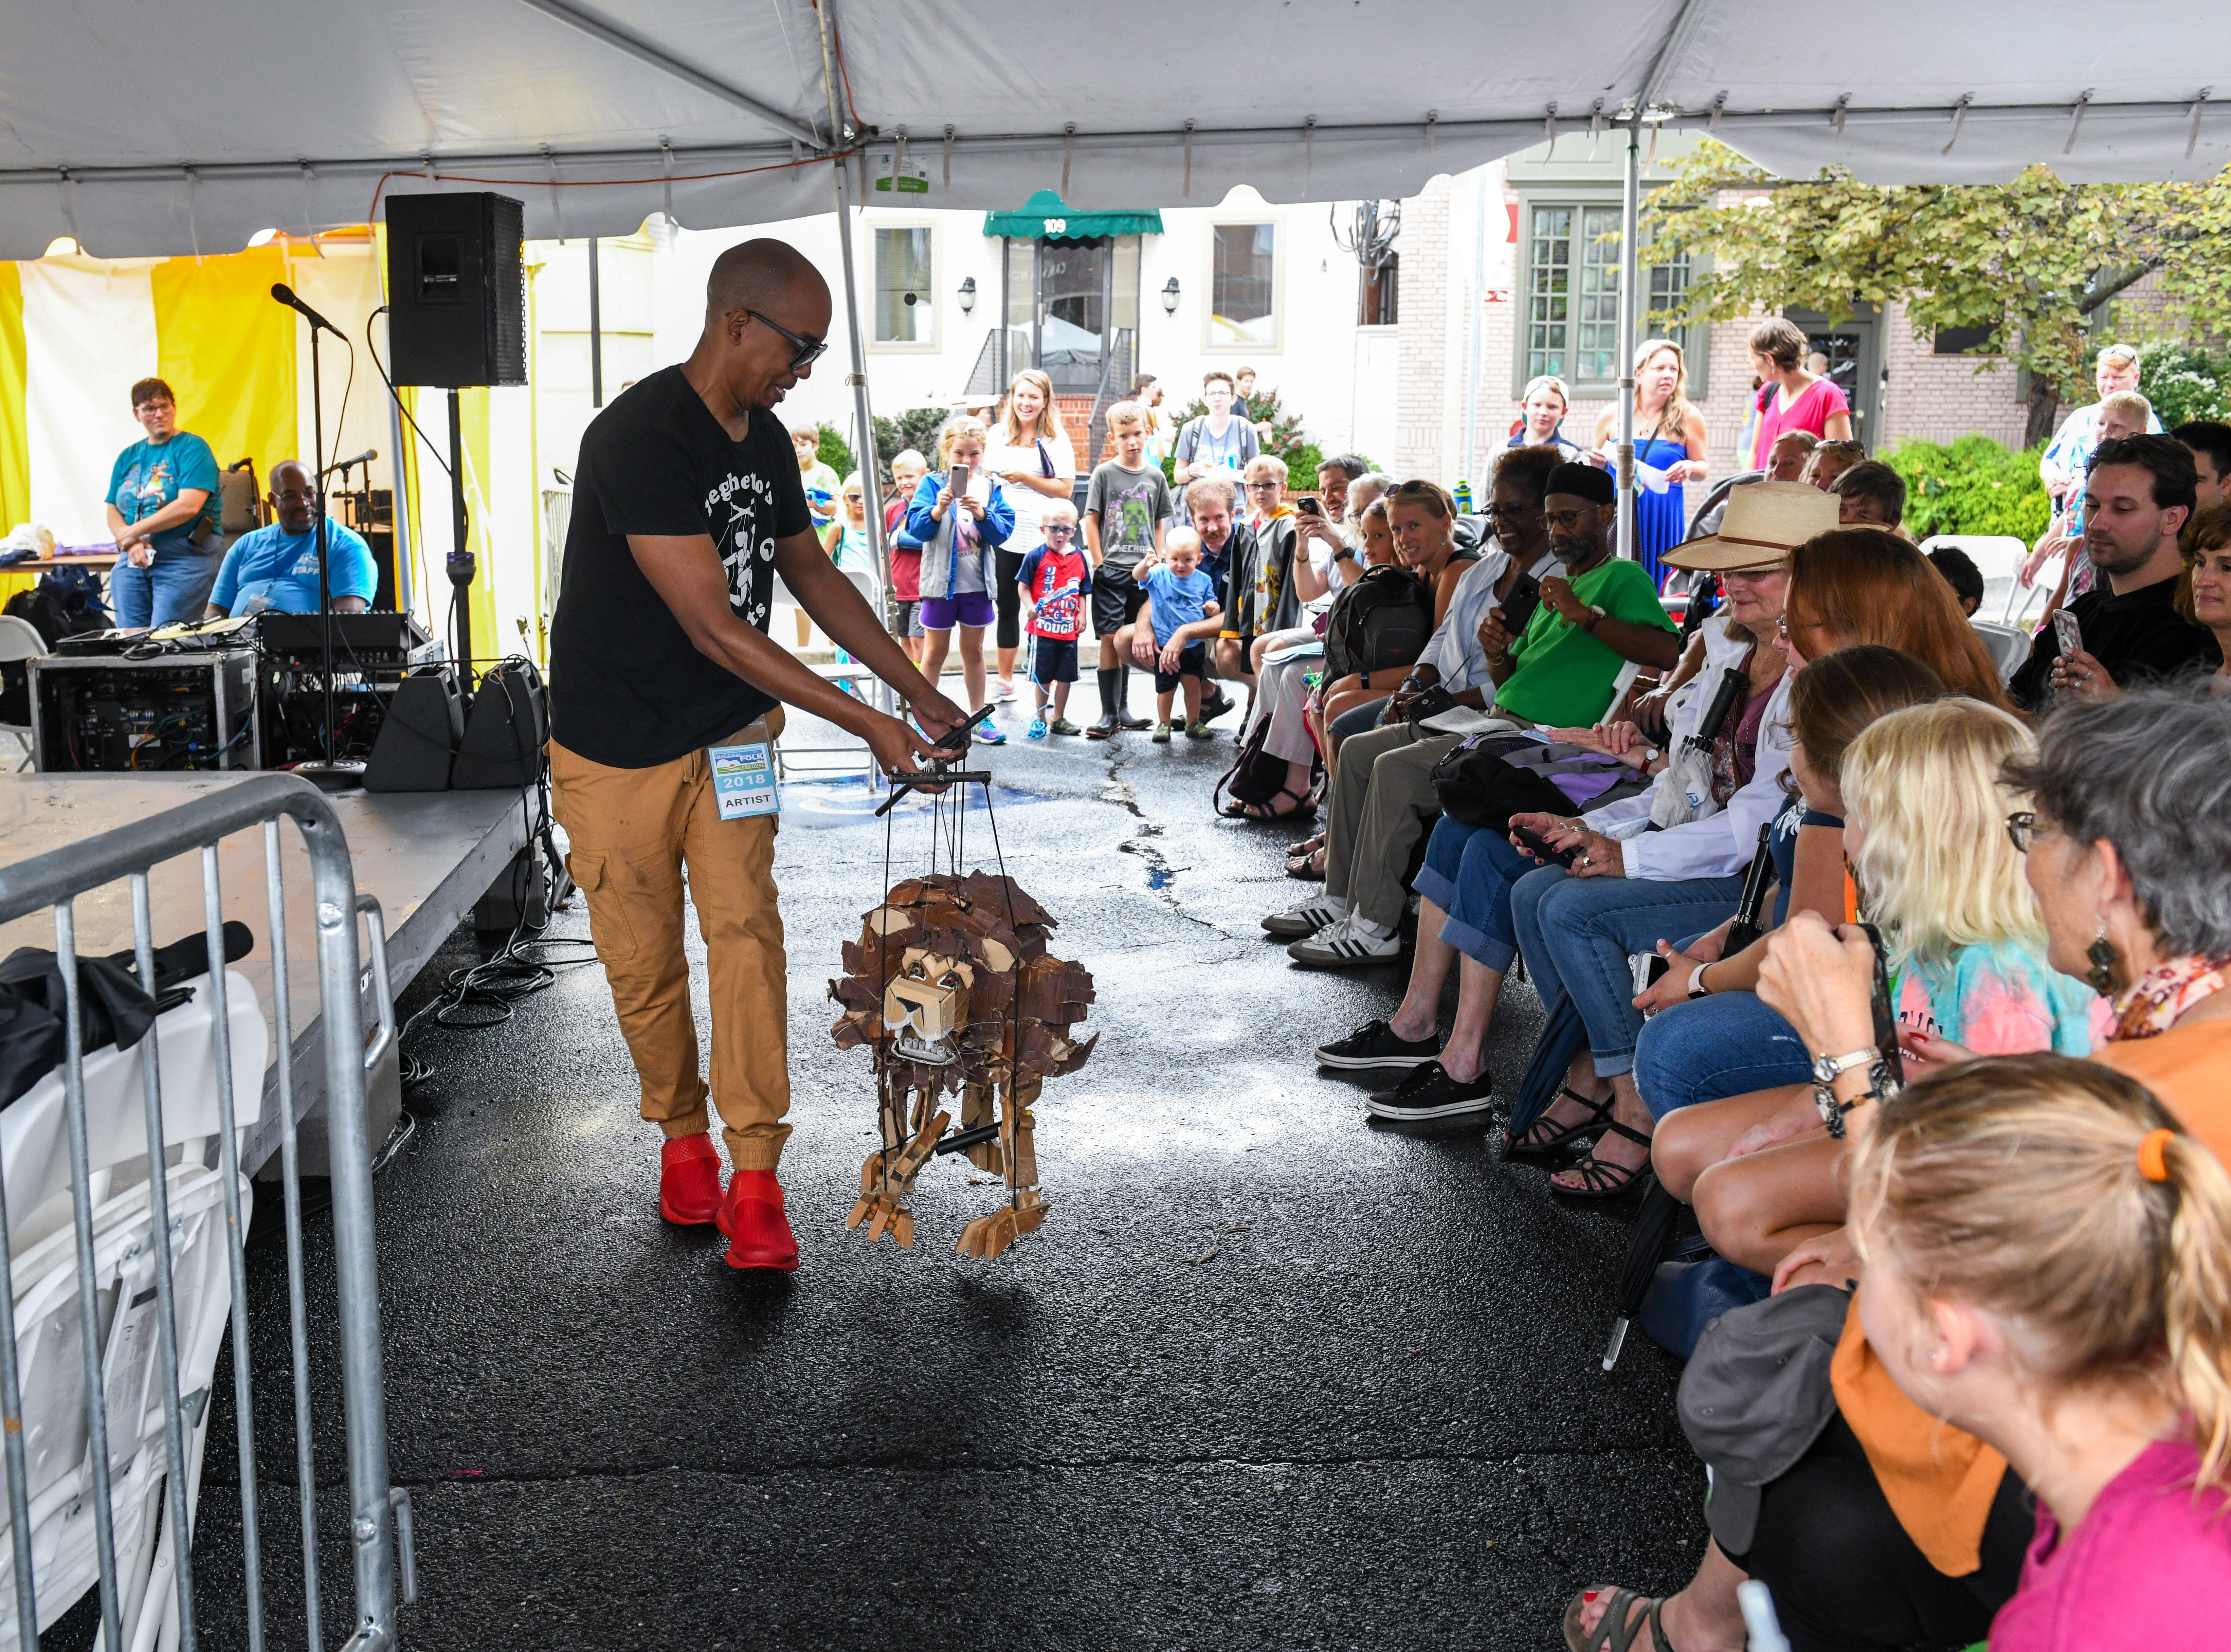 Tarish Papkins of the Jeghetto puppetry group shows off one of their creations to the crowd at the National Folk Festival in Salisbury on Saturday, Sept. 8.